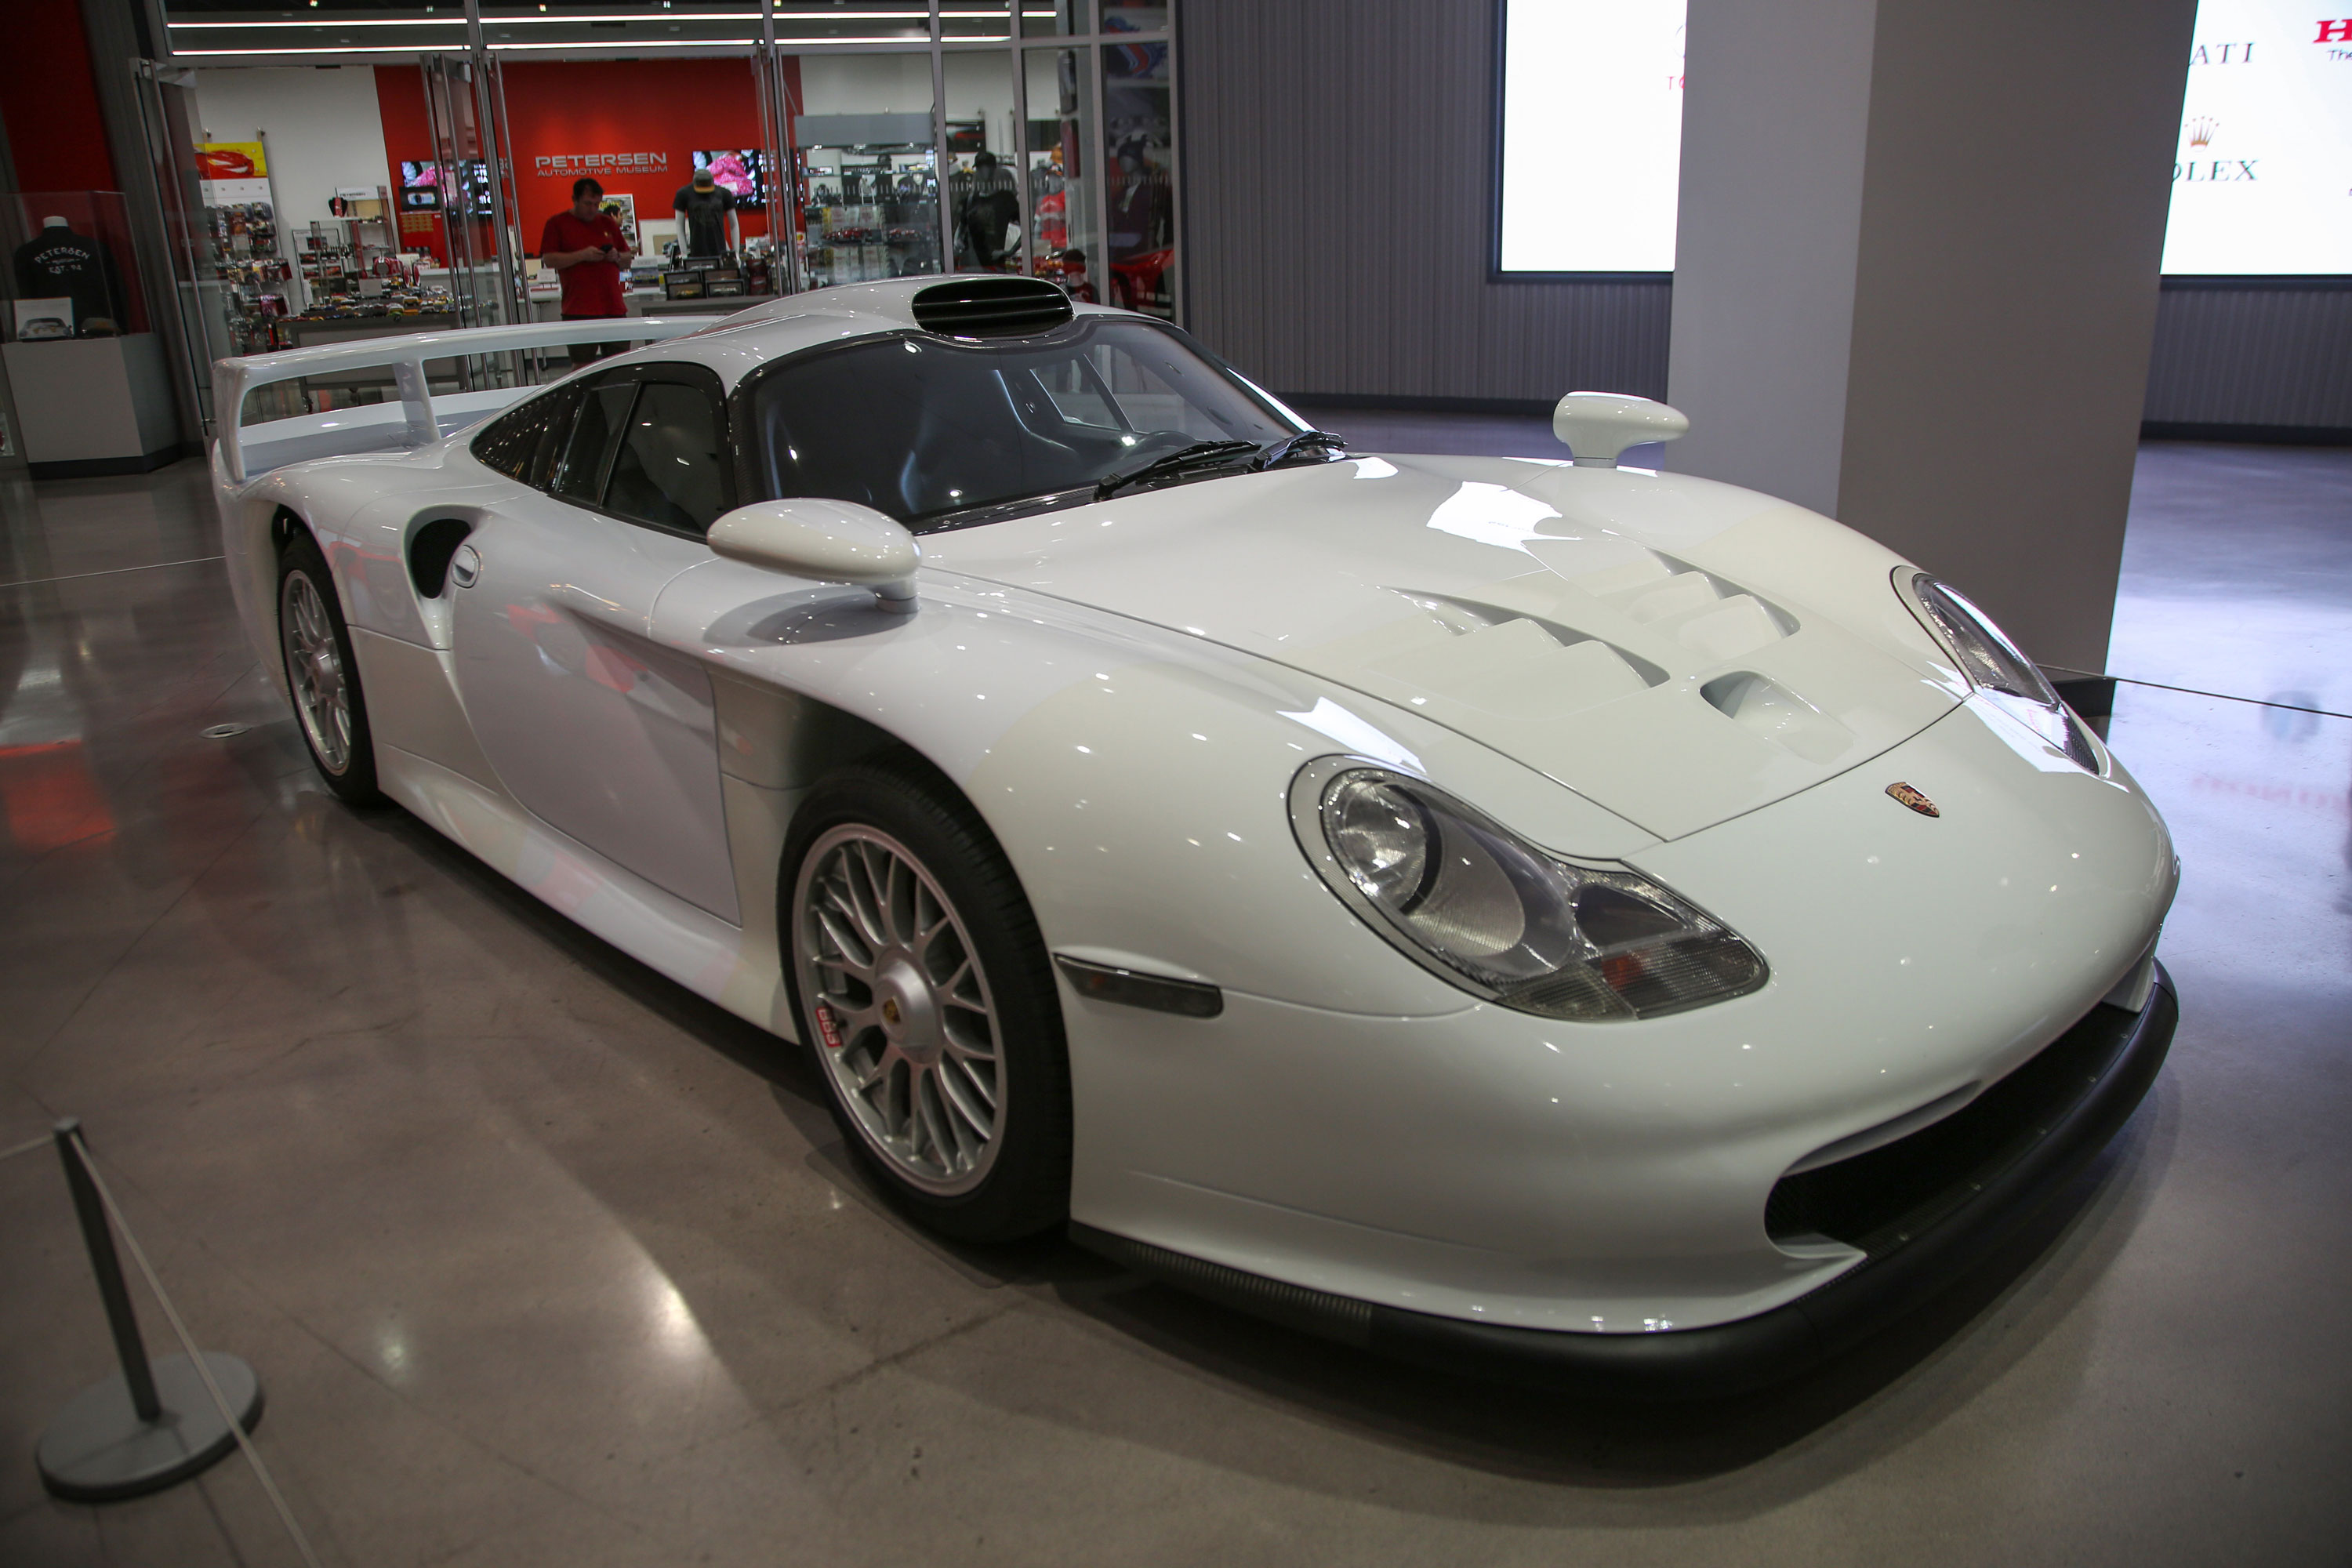 A 1998 911 GT1 Strassenversion is on display just inside the museum's main entrance.